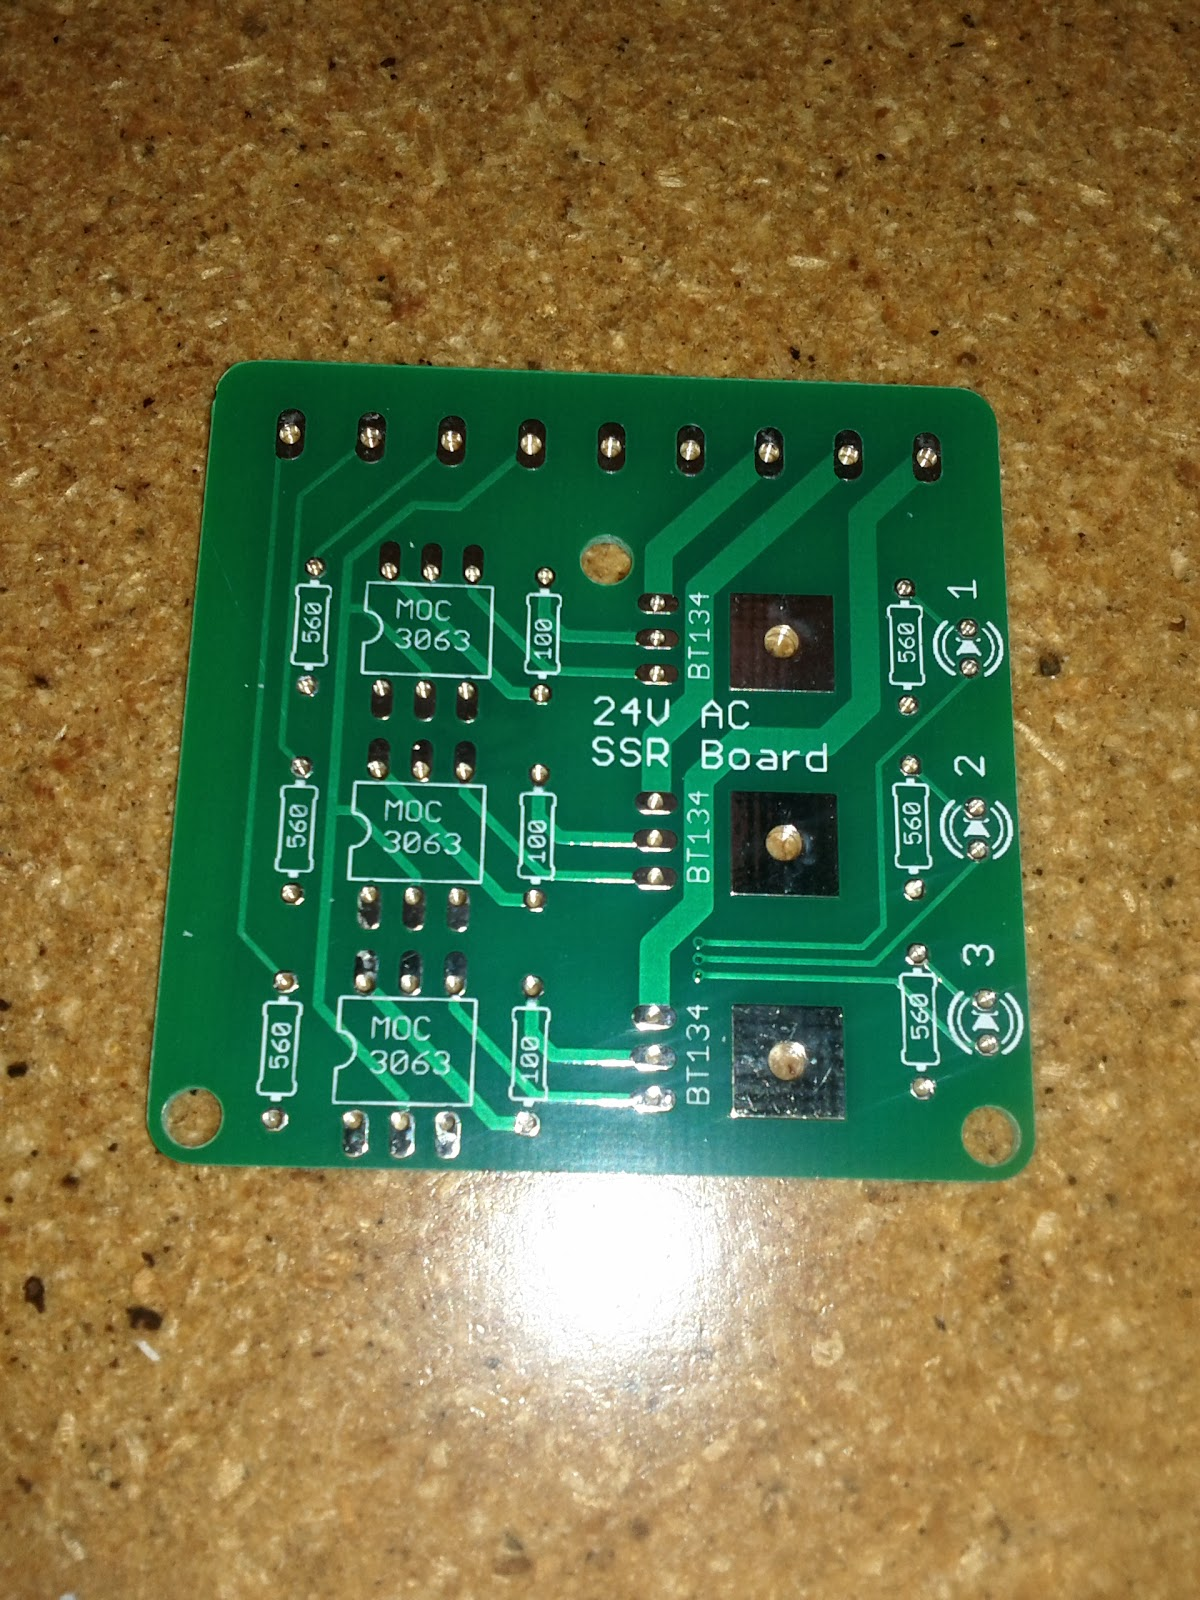 Makeatronics 24v Ac Solid State Relay Board Digital Circuit Wiring Diagram Thermostat Raspberry Pis To Thermostats Or Arduino Any Other Microcontroller For That Matter So I Decided Design A Fill Space